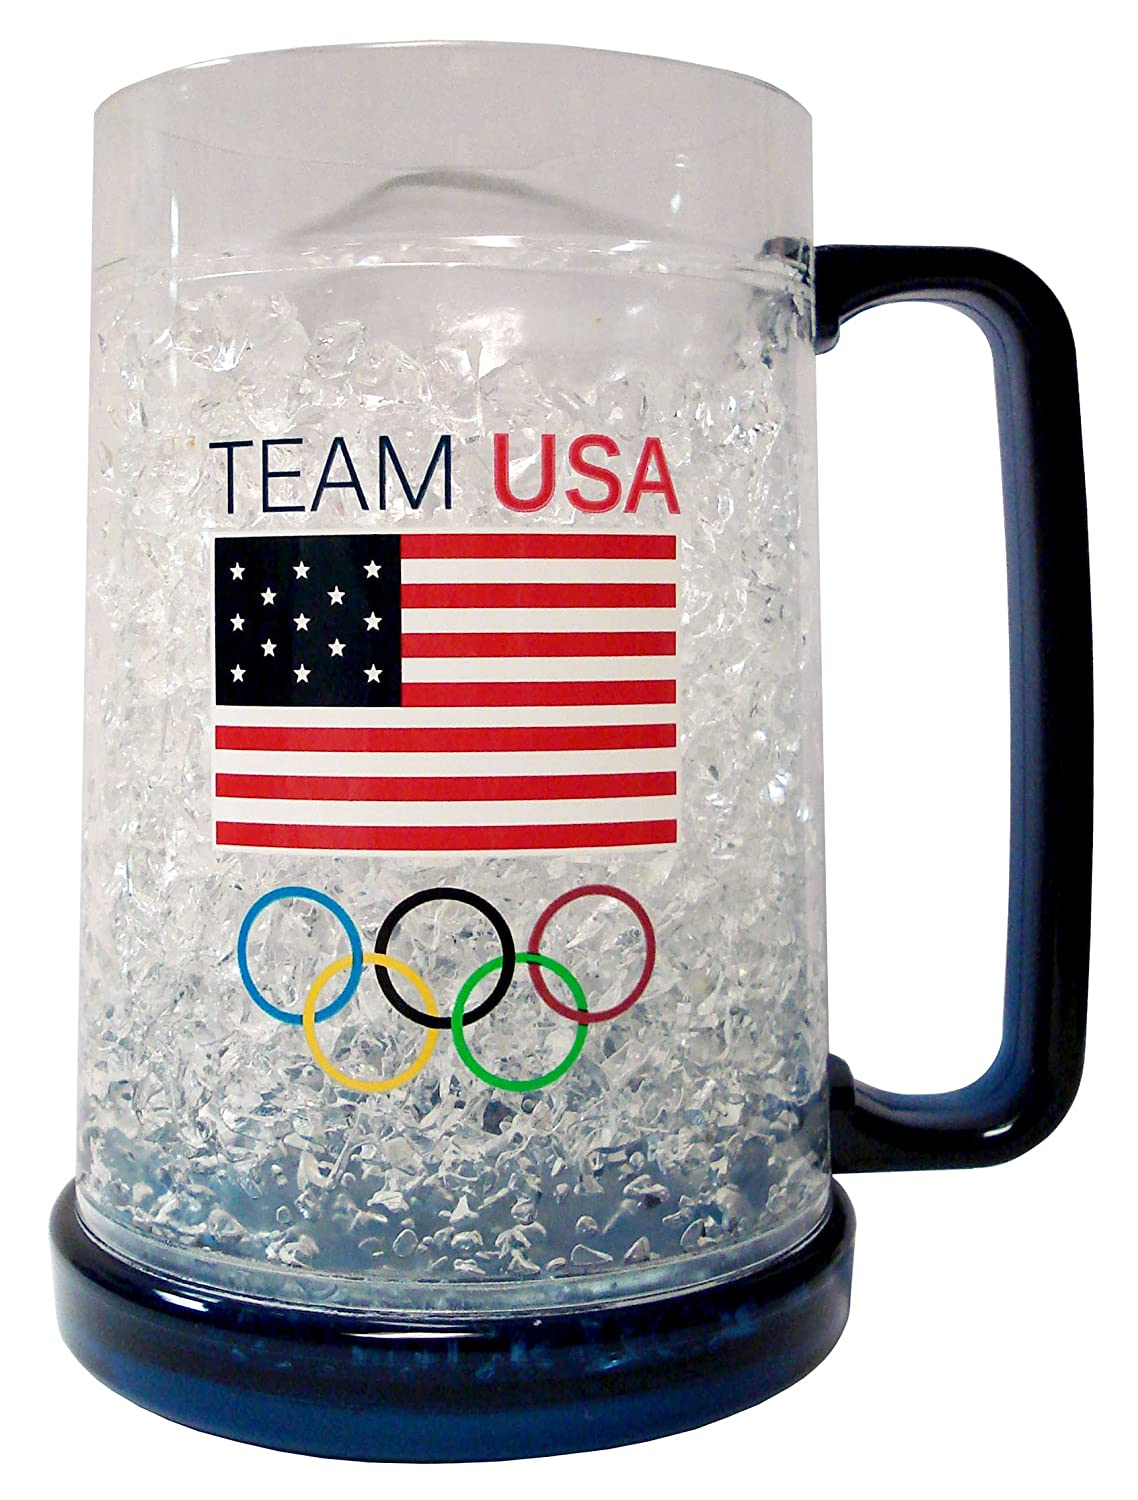 Duck House NCAA Team USA Crystal Freezer Mugs, White, 1 Piece, LCM731B